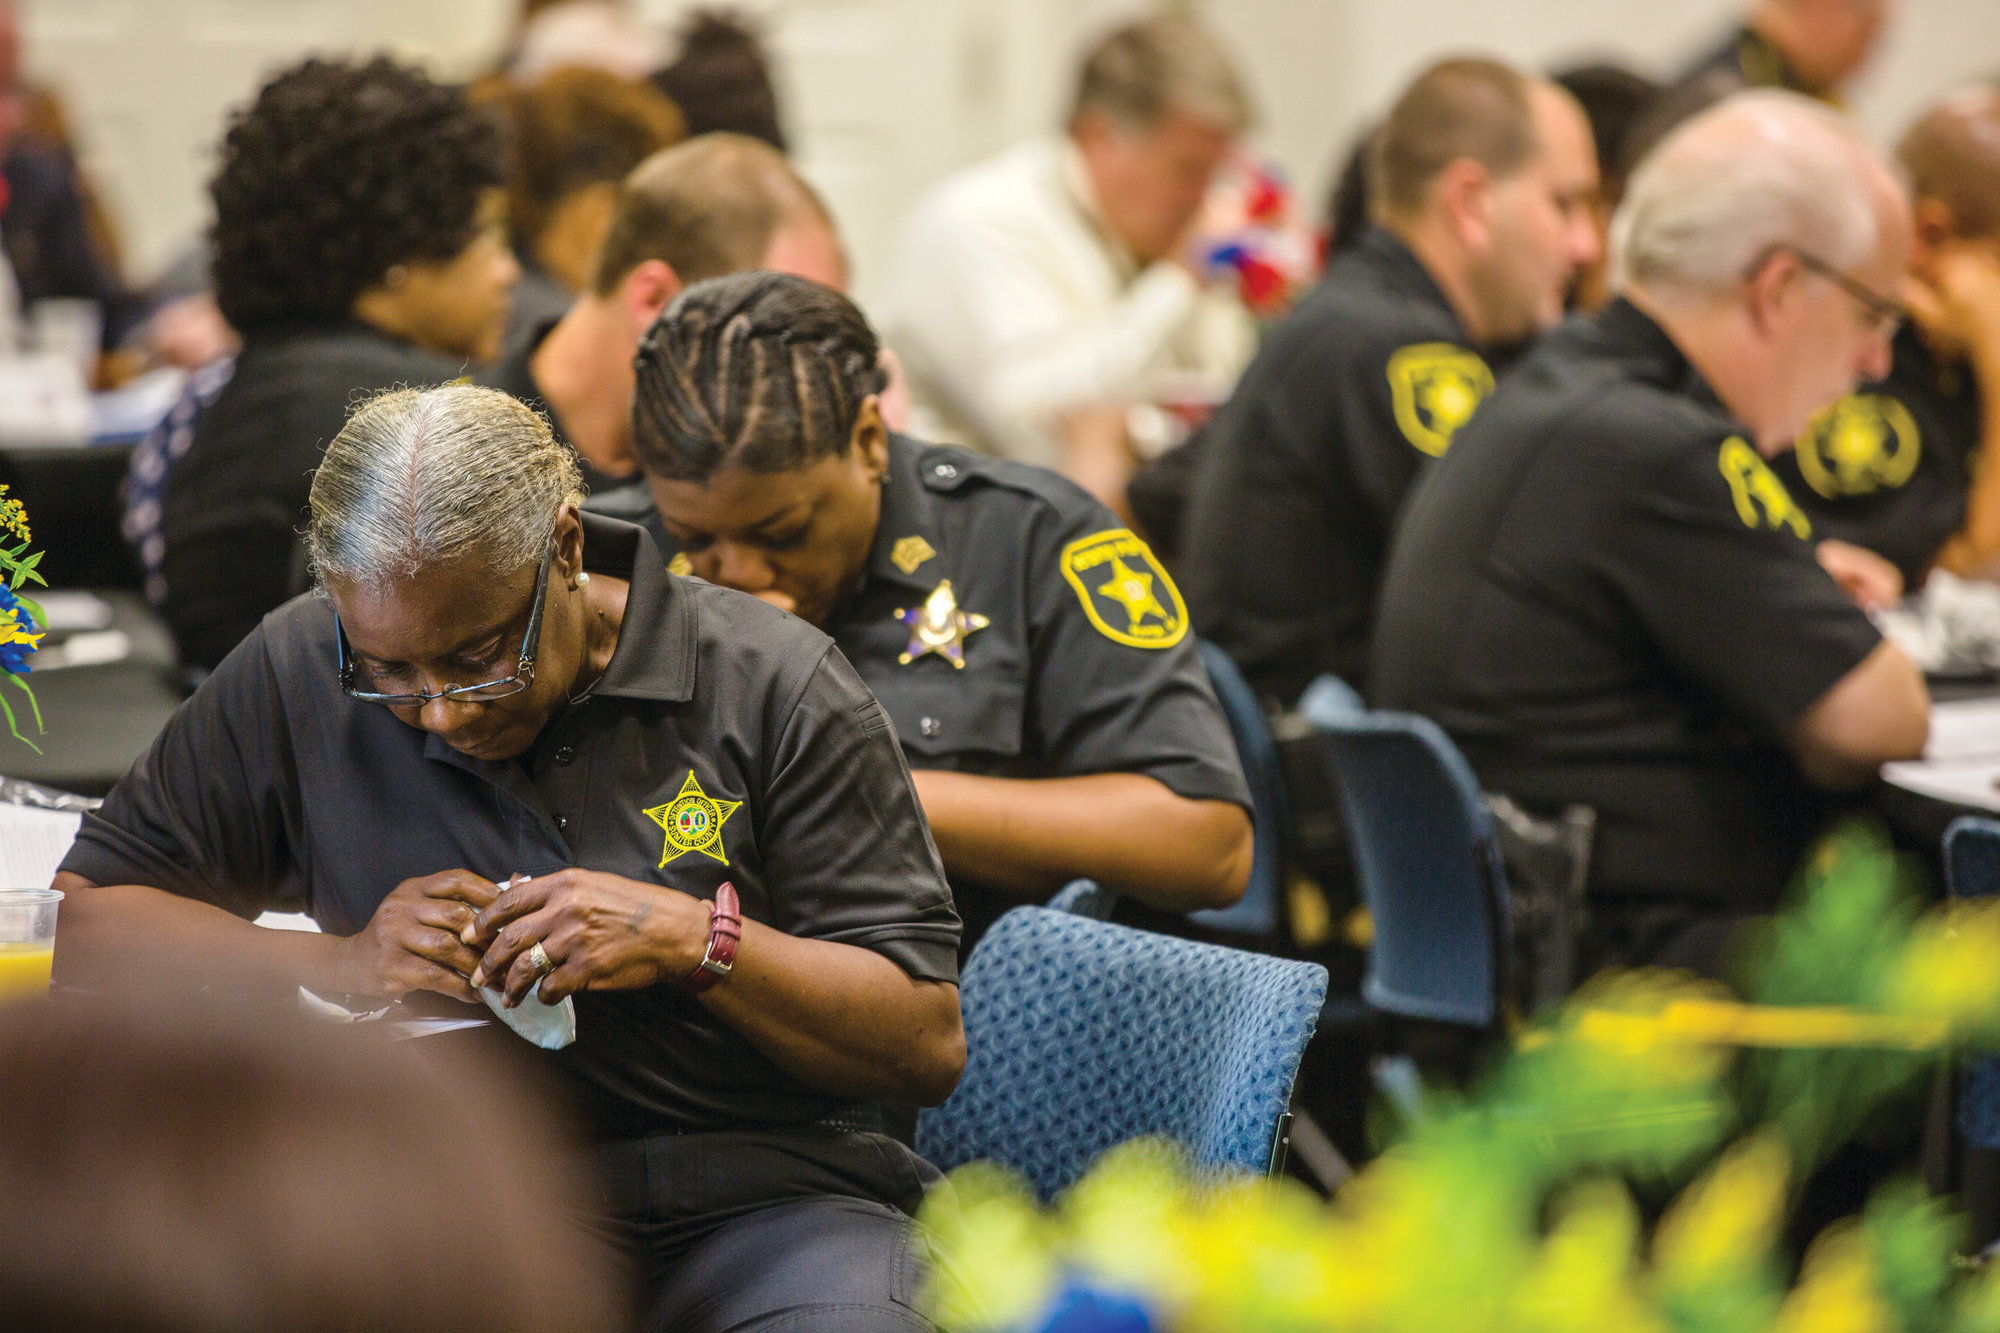 A detention officer with Sumter County bows her head along with others at the prayer breakfast on Tuesday.